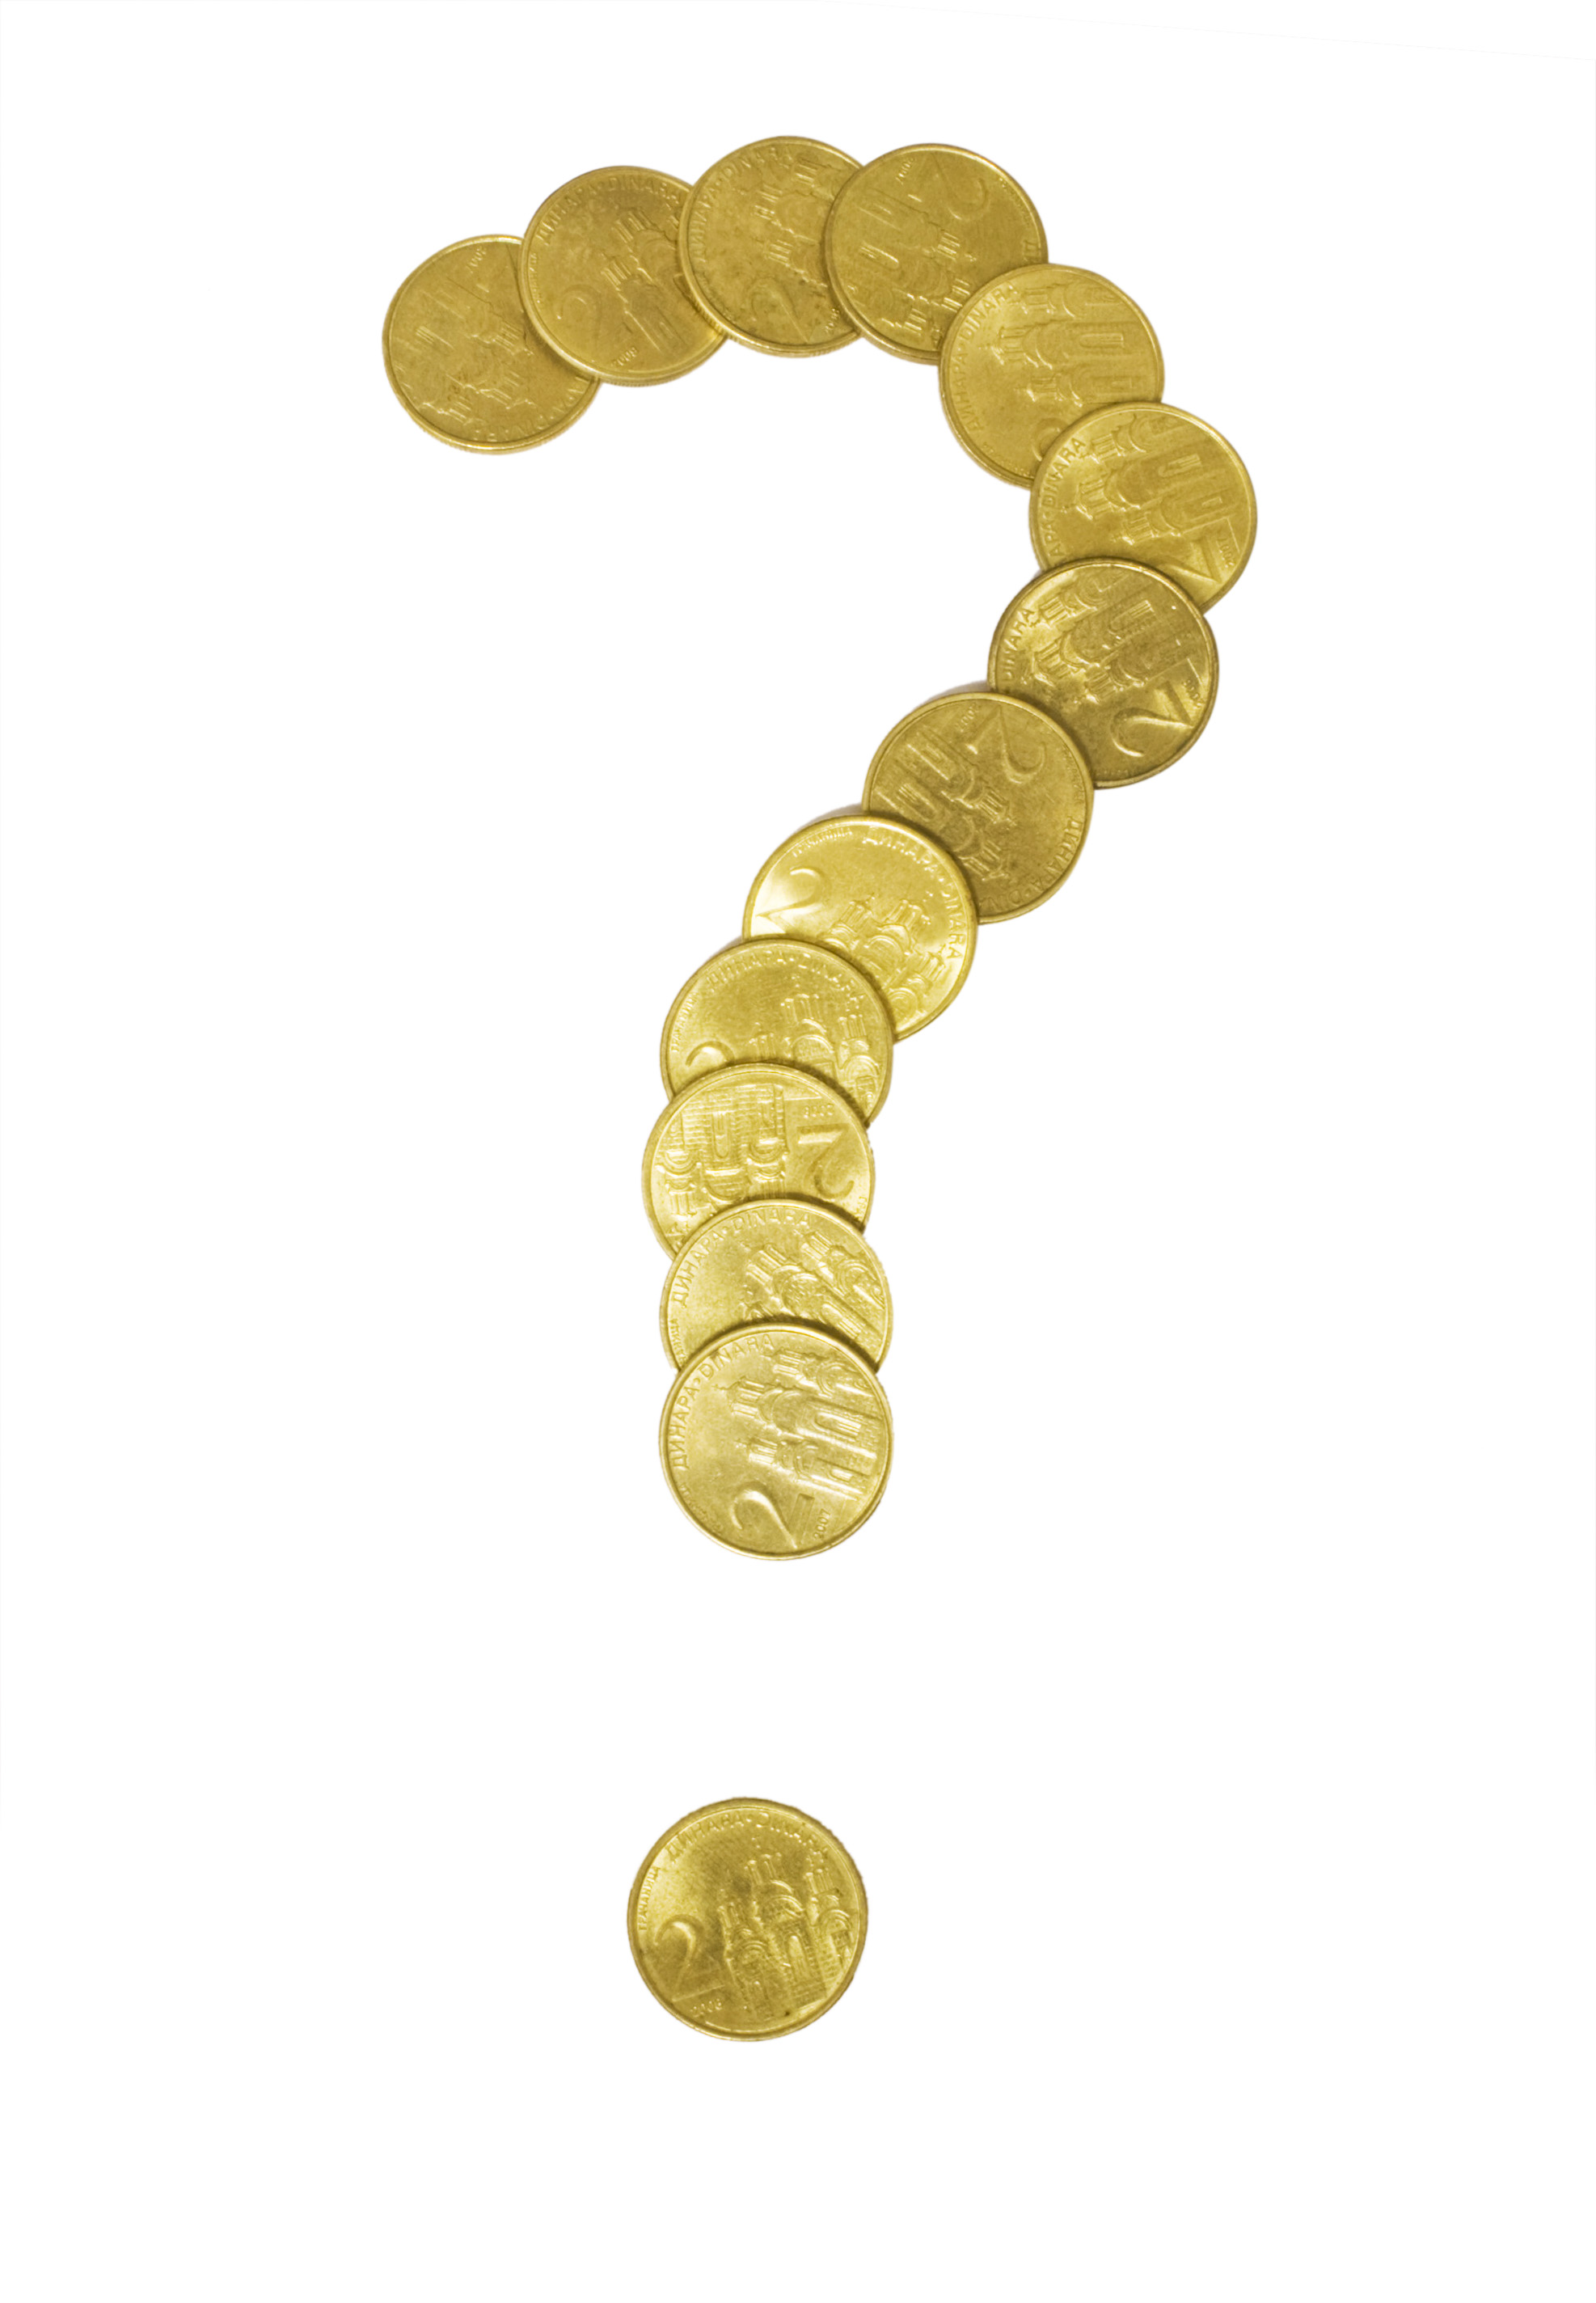 gold-coin-question-sign